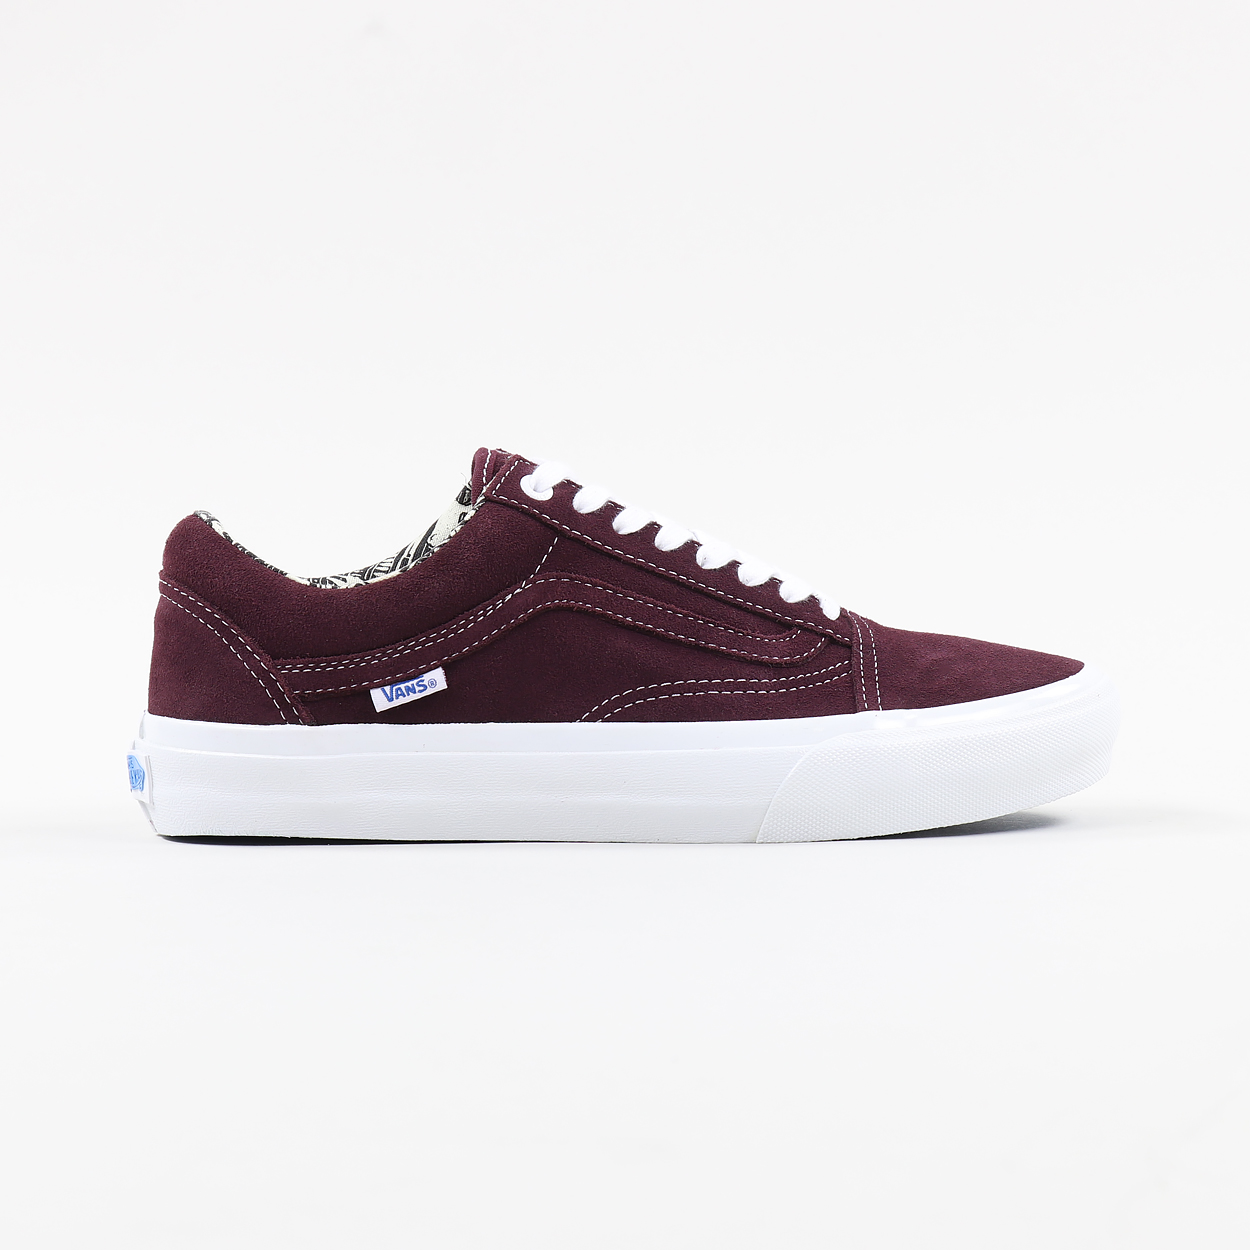 22cb7a0568 Vans Mens Skate Old Skool Pro Ray Barbee Shoes OG Burgundy Red £51.00